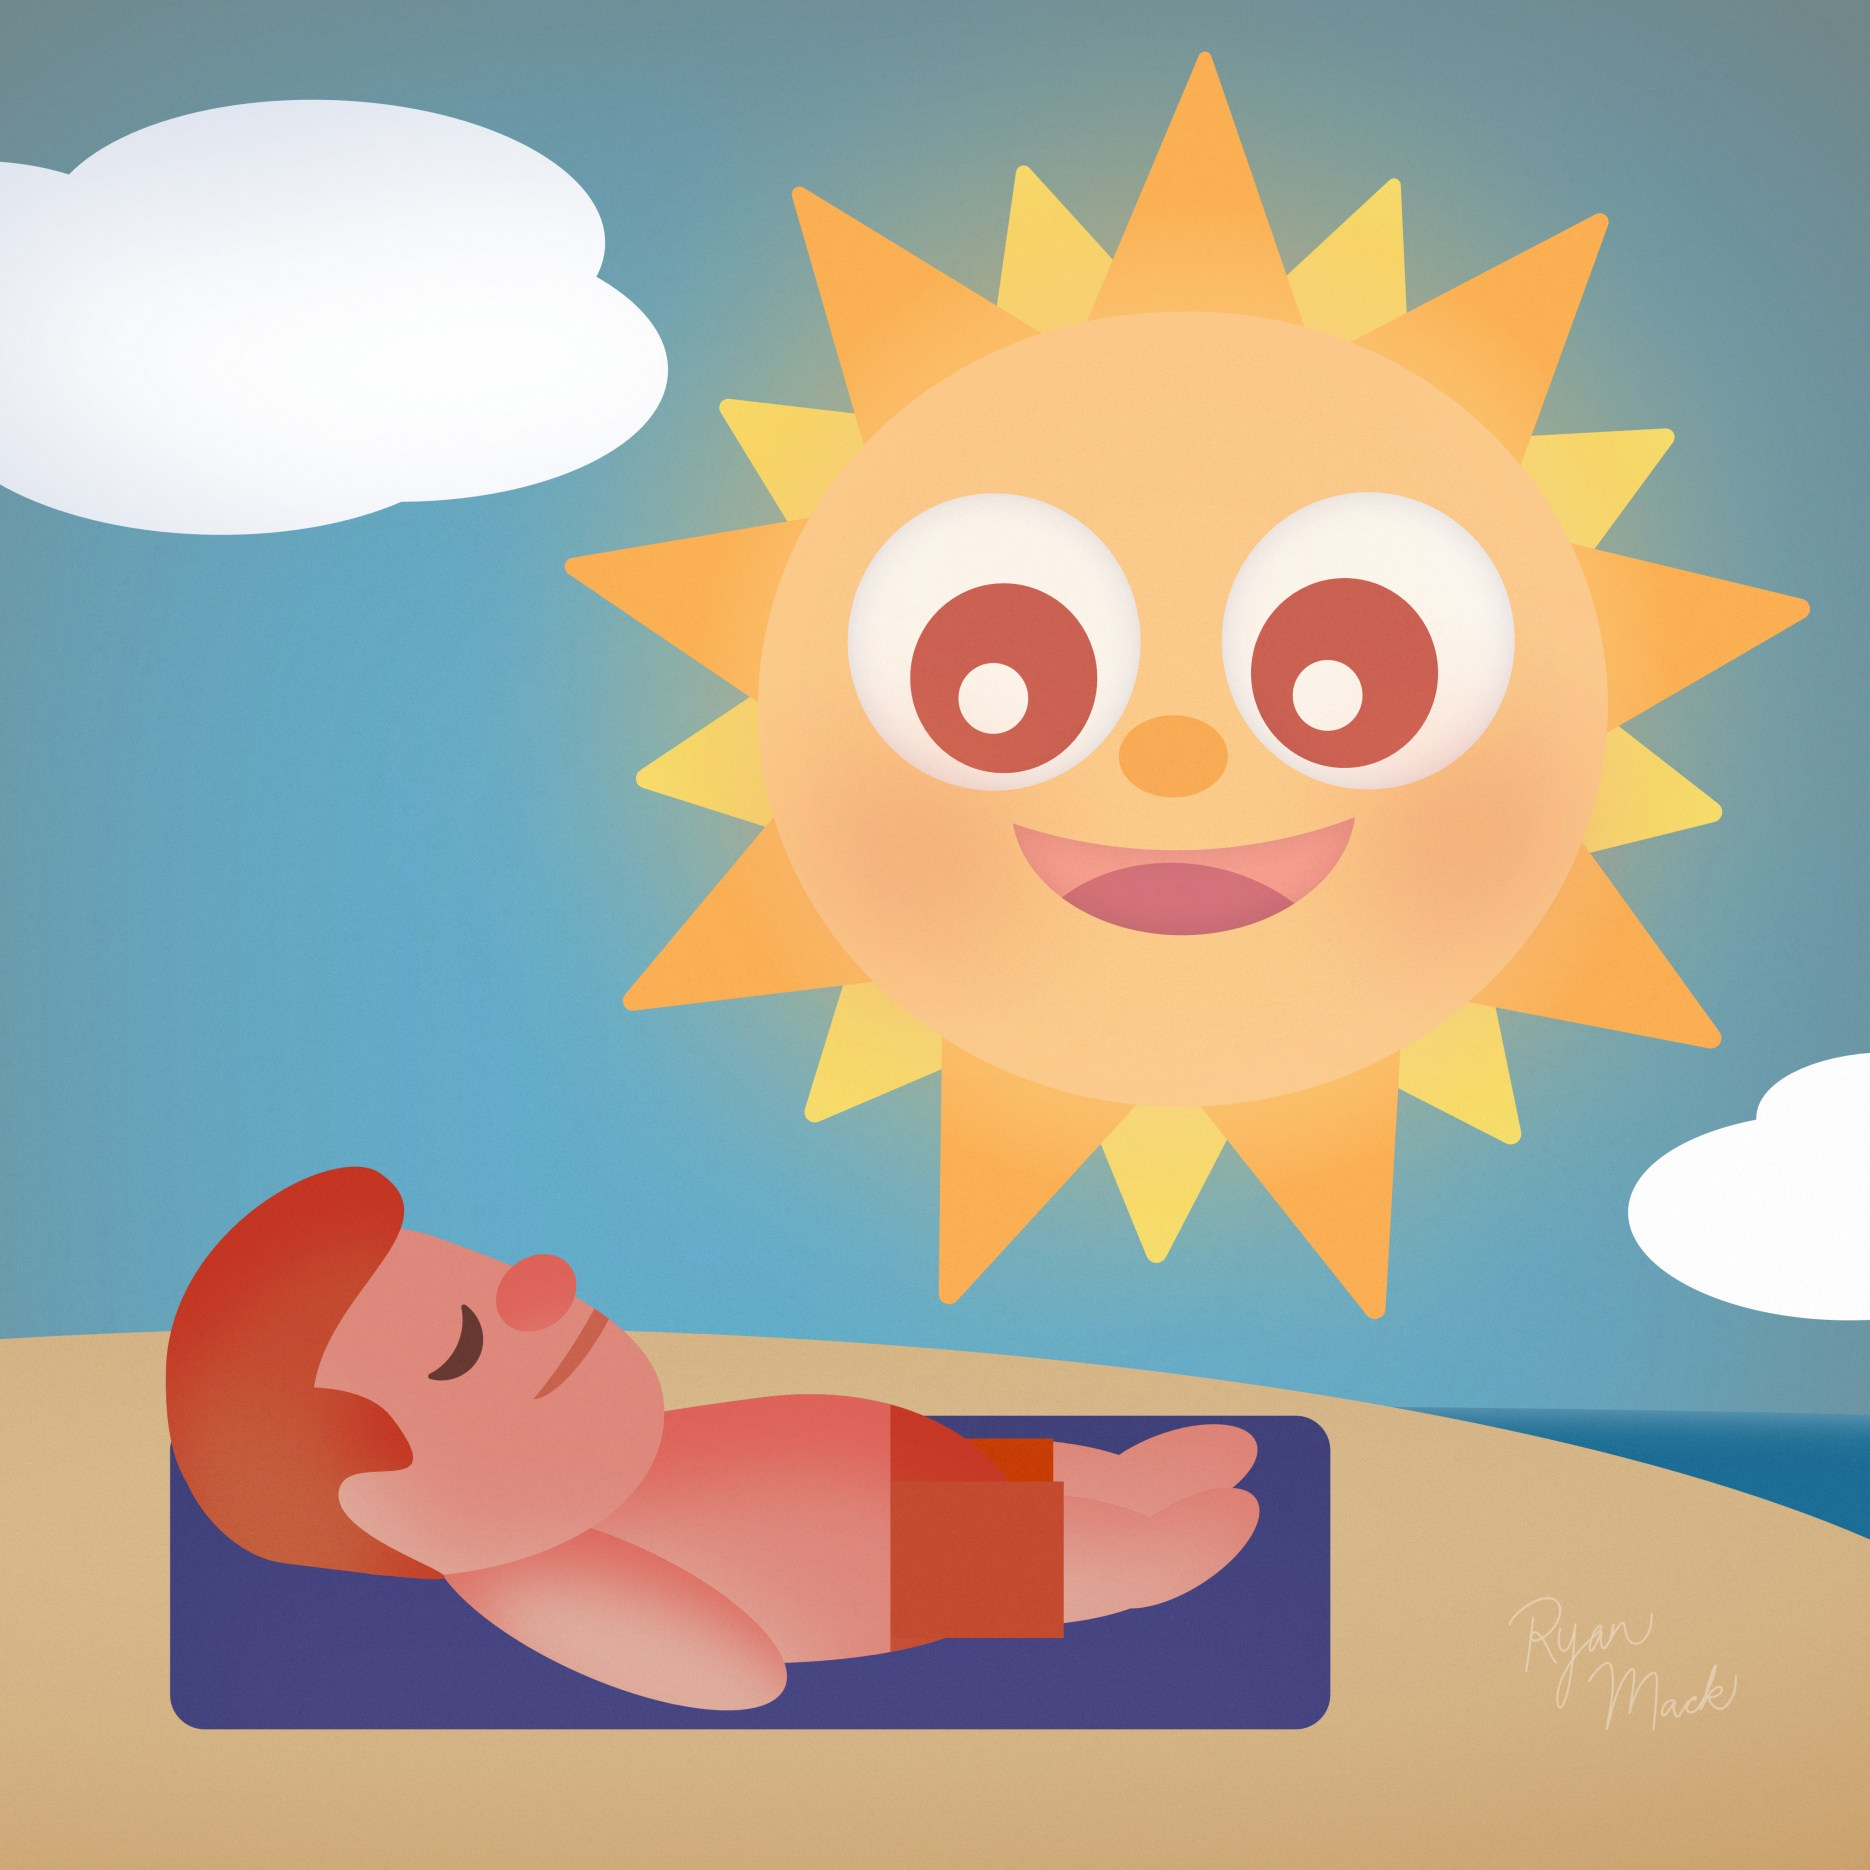 Cute cartoon sun smiling down on a man sunbathing on a towel with burnt red skin, red hair and red swimsuit